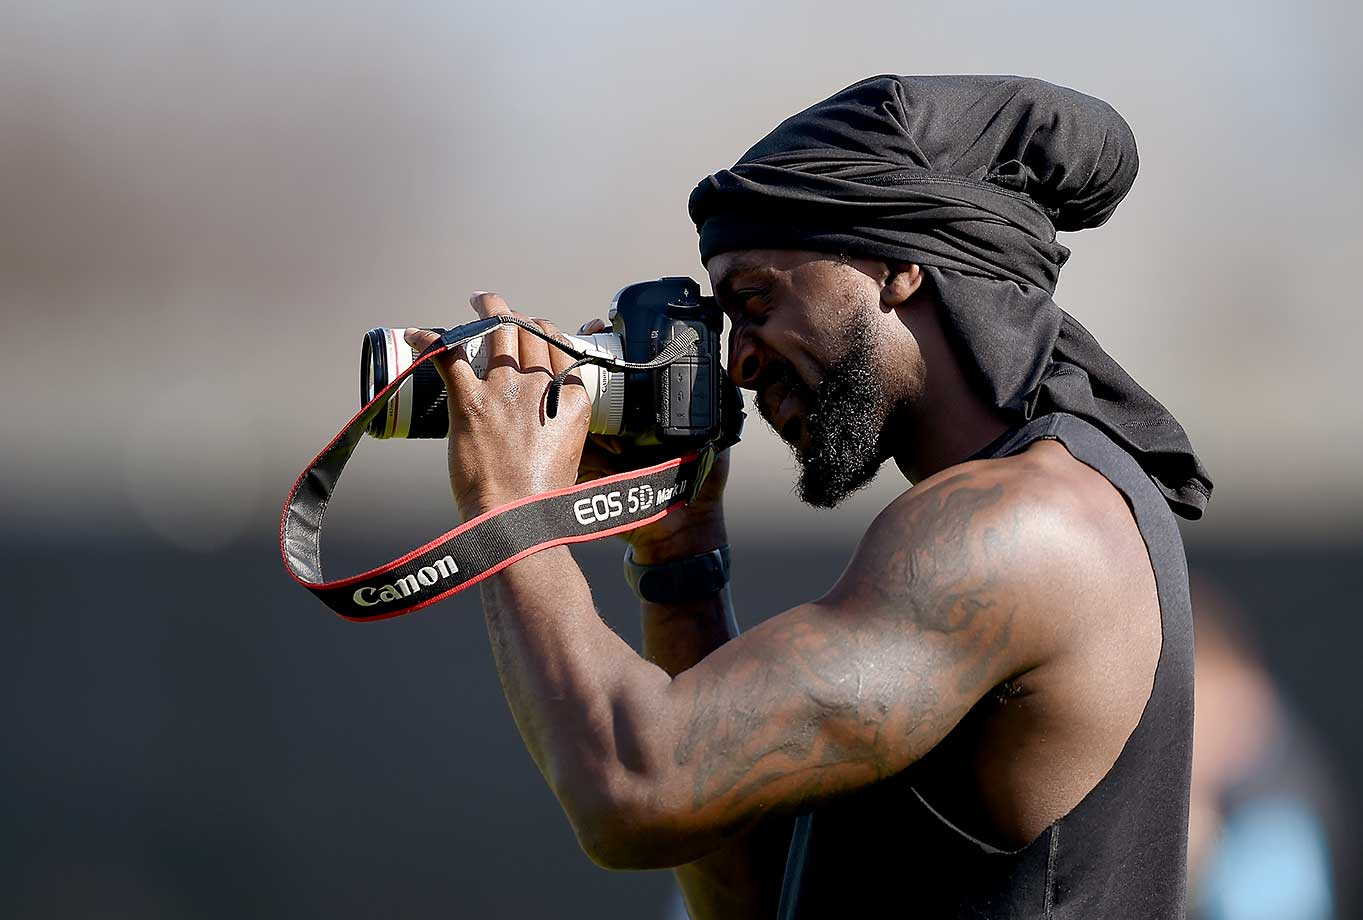 Injured player Charles Tillman of the Carolina Panthers takes photographs of his teammates in drills.